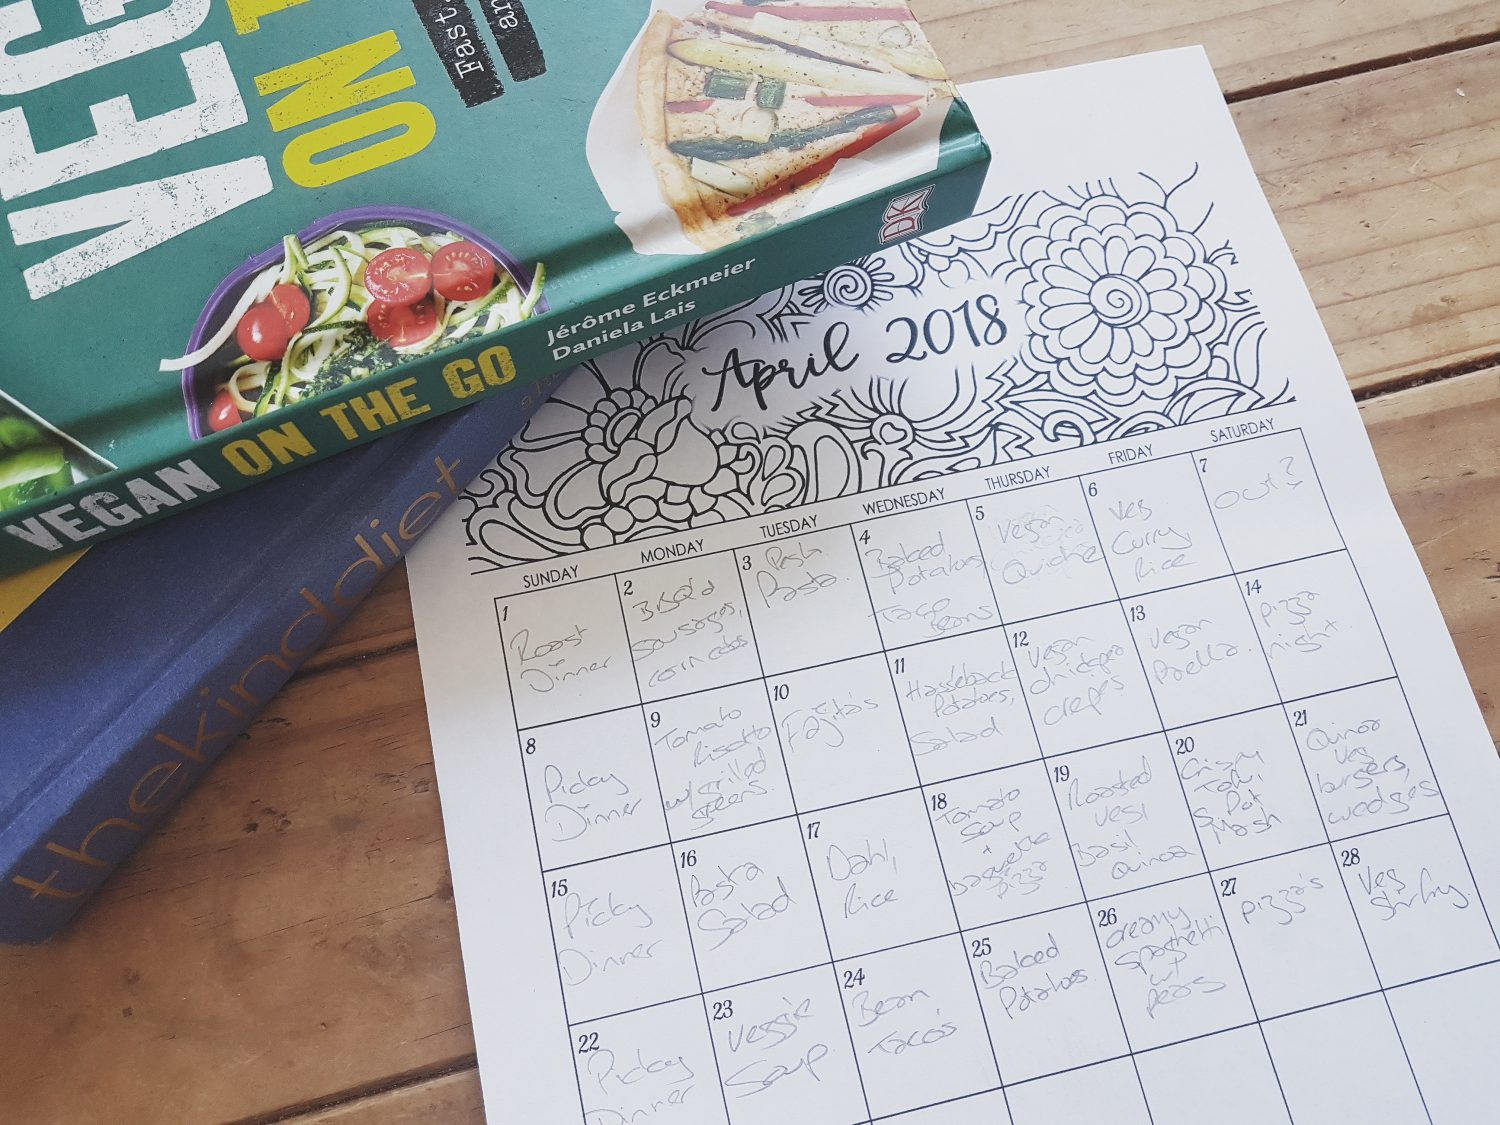 Vegan family meal plan for a month